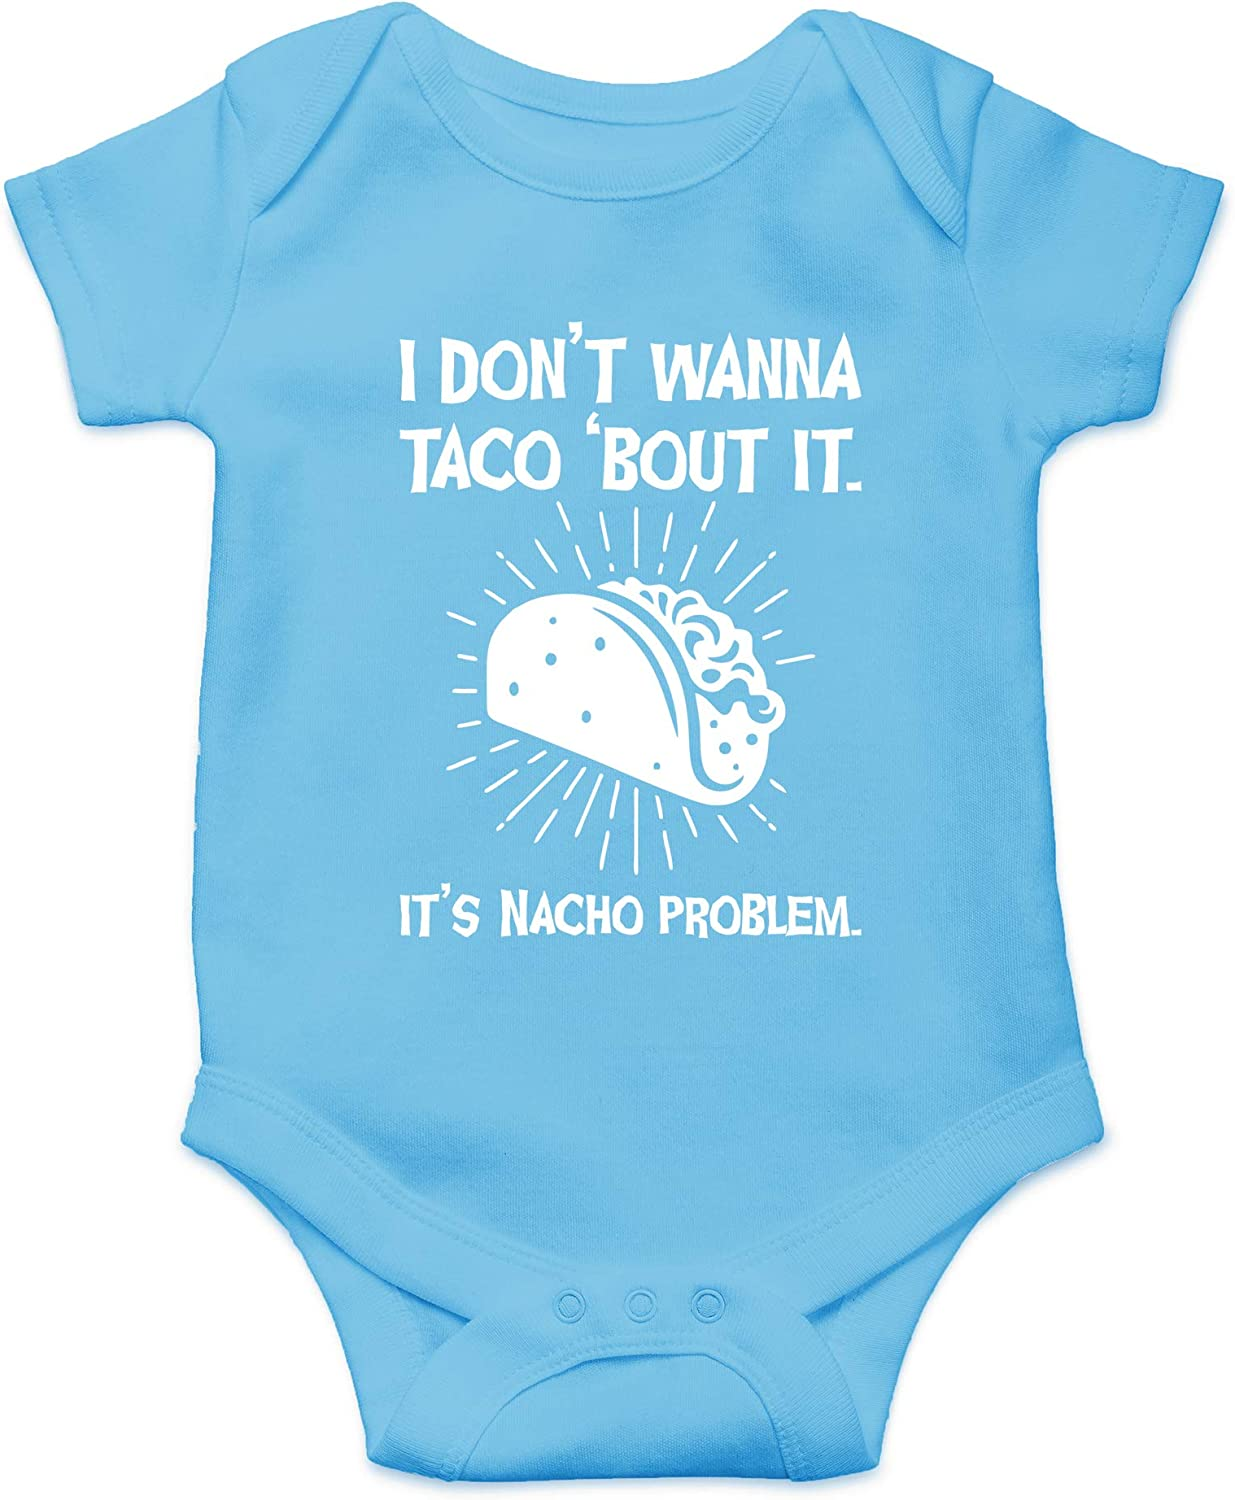 CBTwear I Don't Wanna Taco Bout It - Funny Food Novelty Outfits - Cute Infant One-Piece Baby Bodysuit